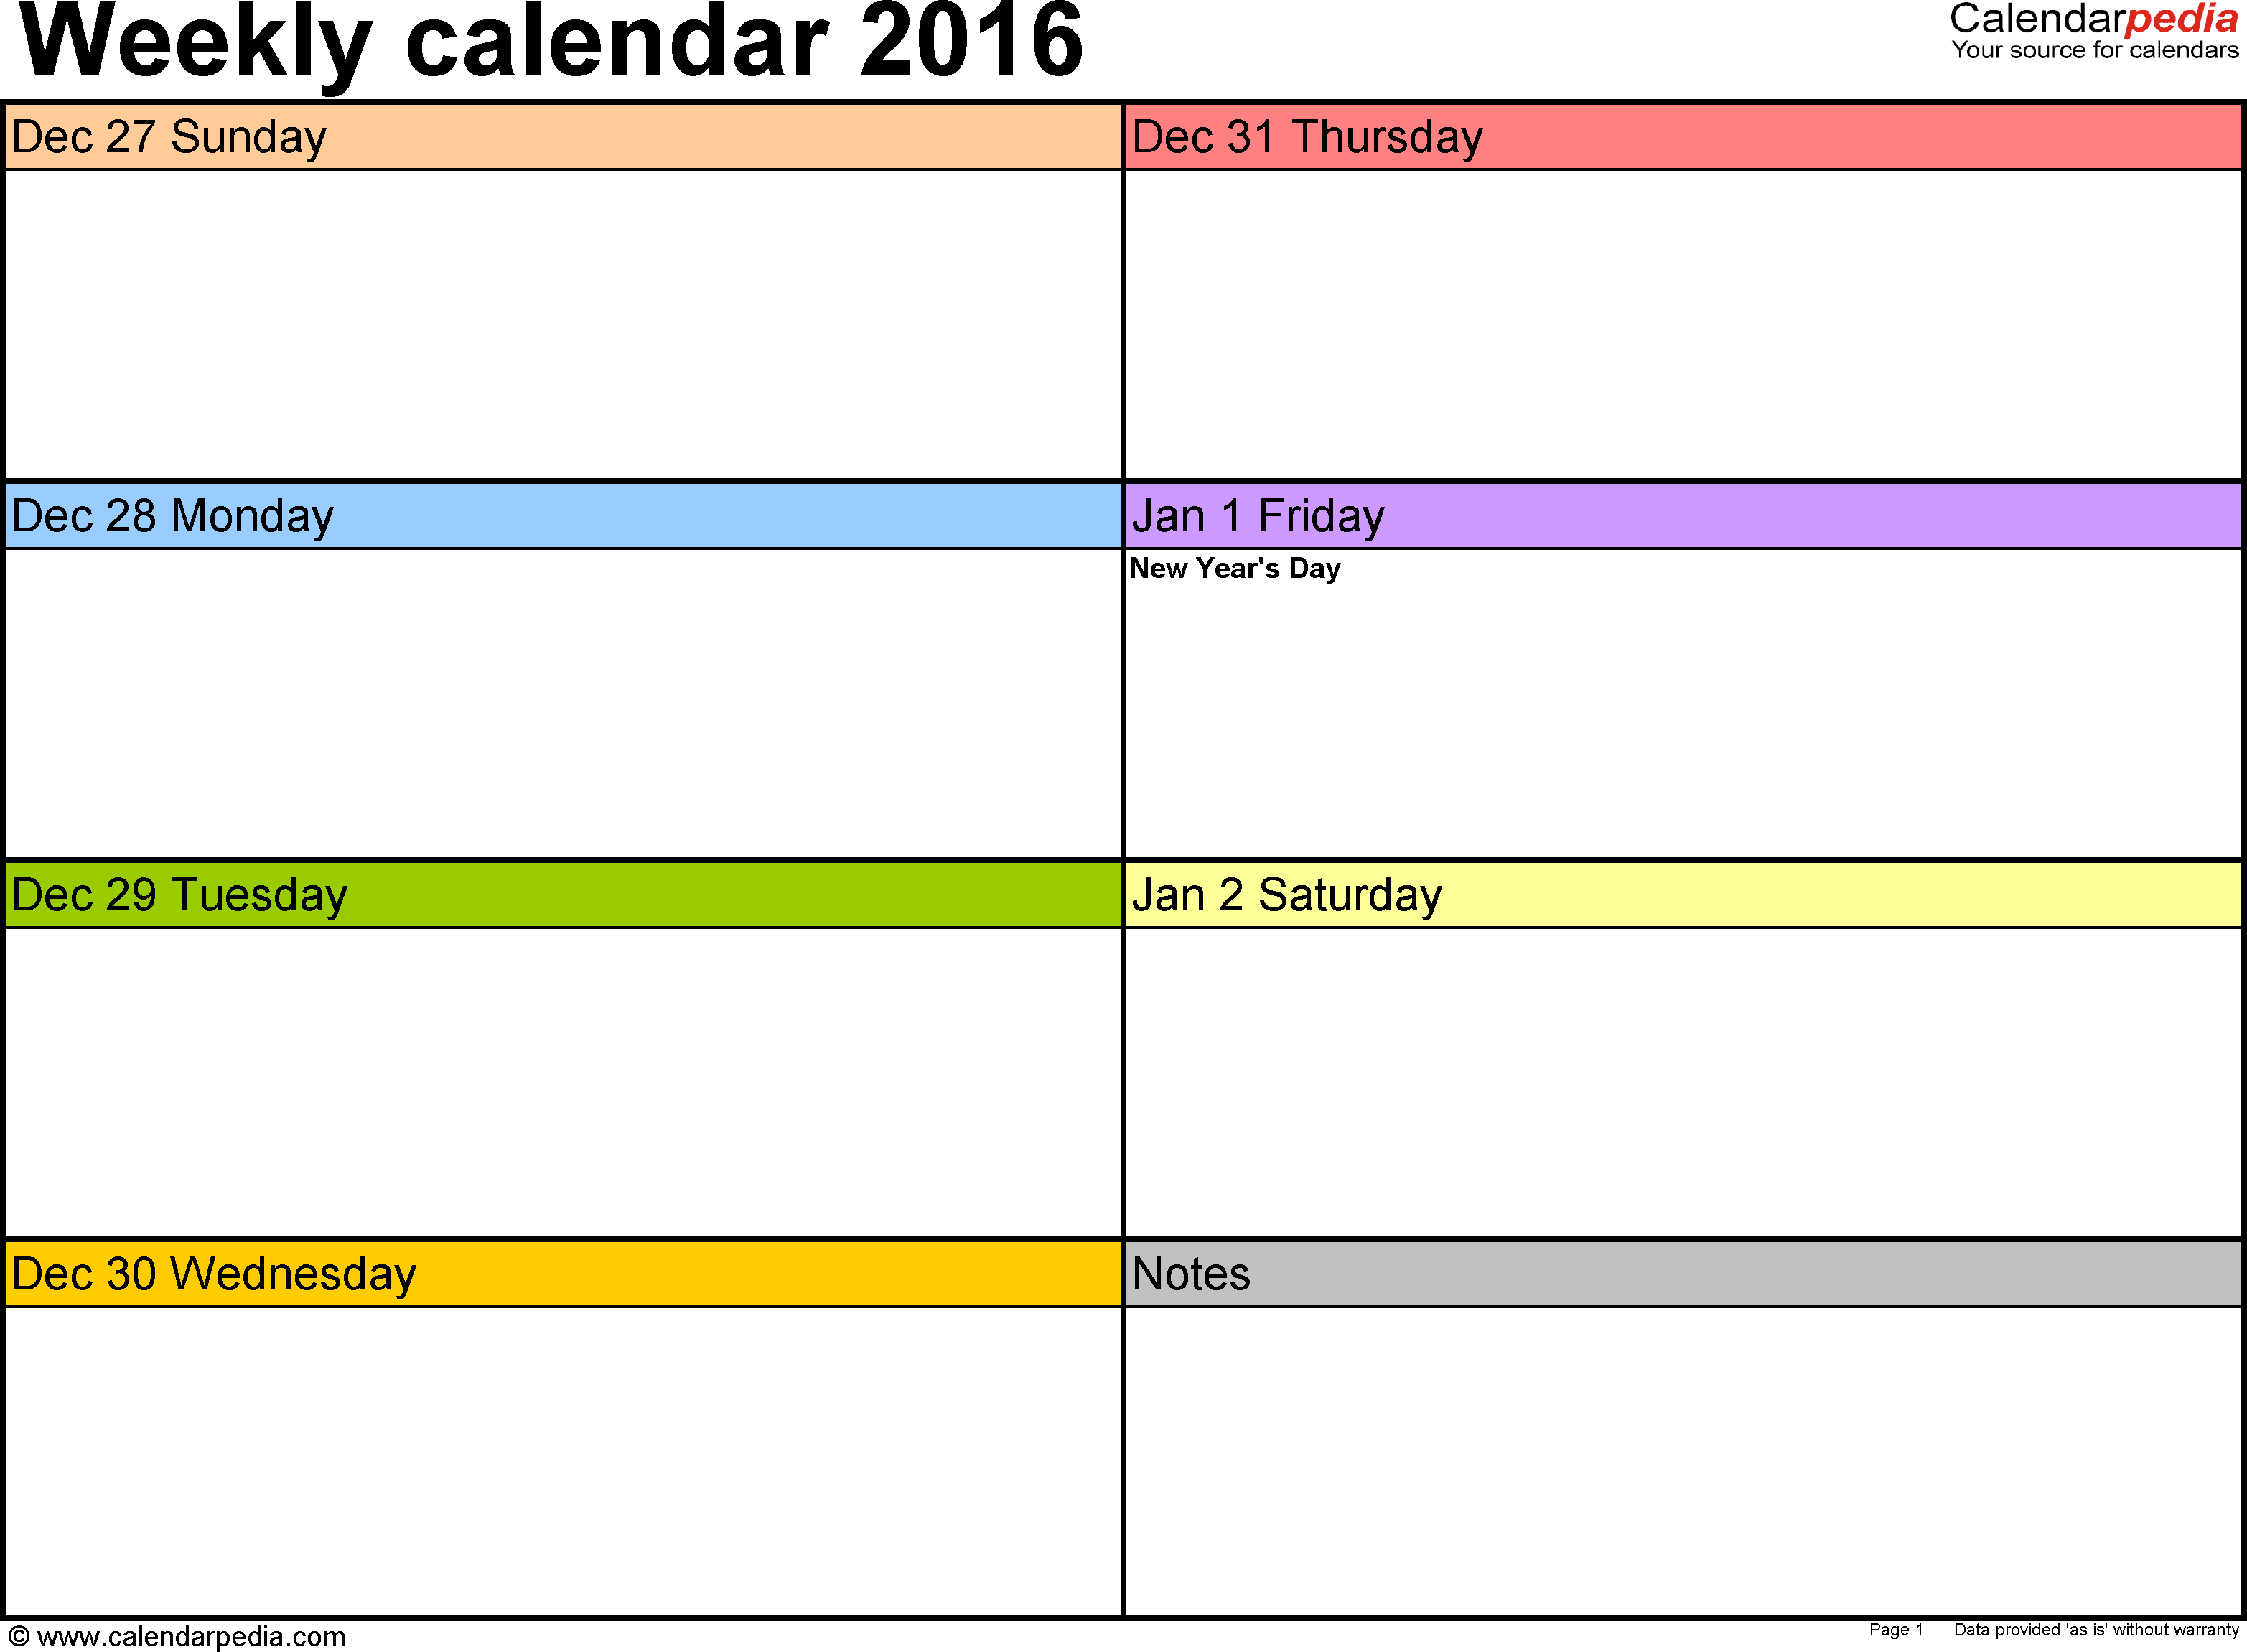 Weekly Calendar 2016 Printable Hourly | Search Results | 2016 Calendar ...